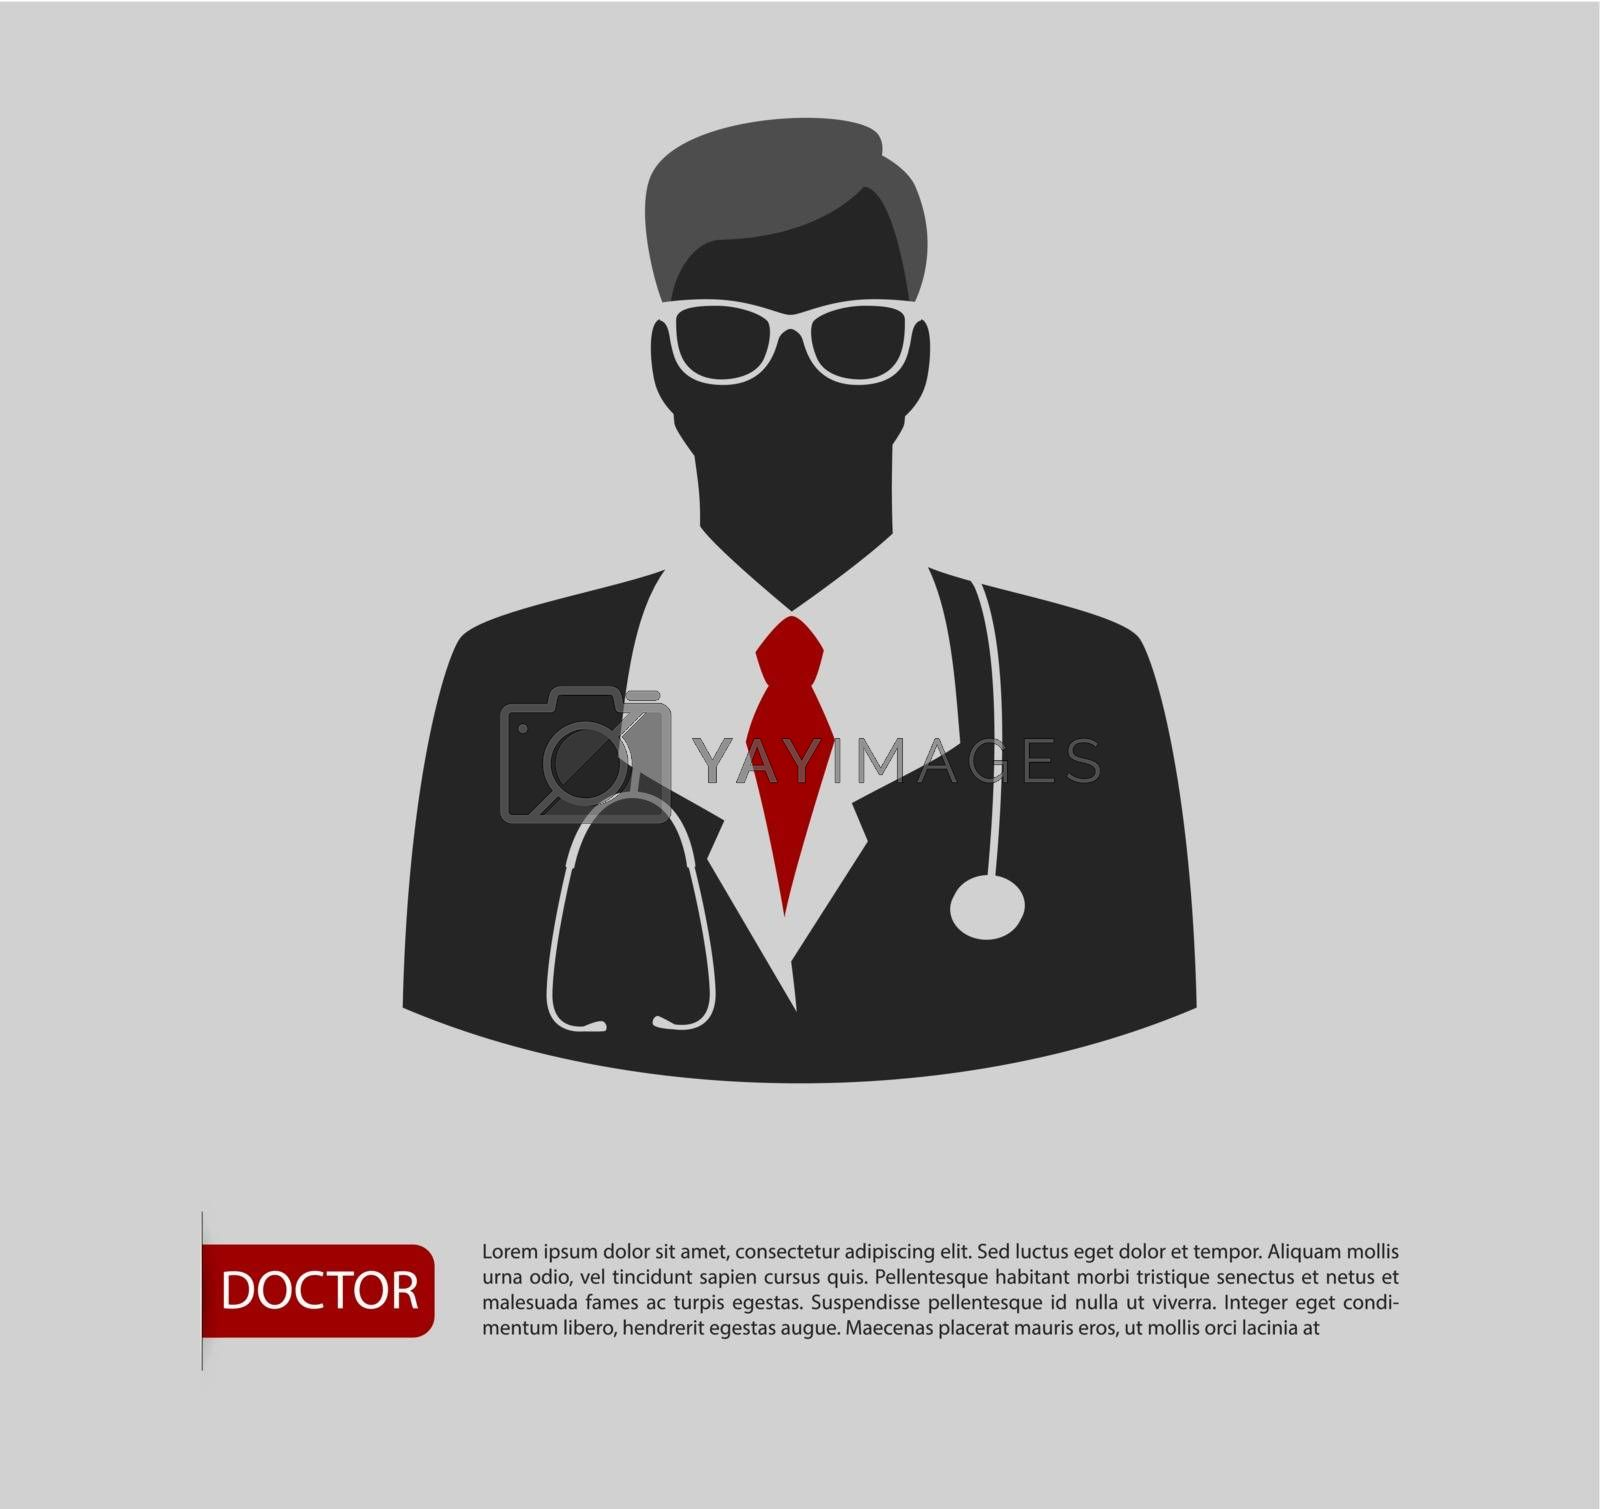 Vector illustration of Doctor man icon 2 colors